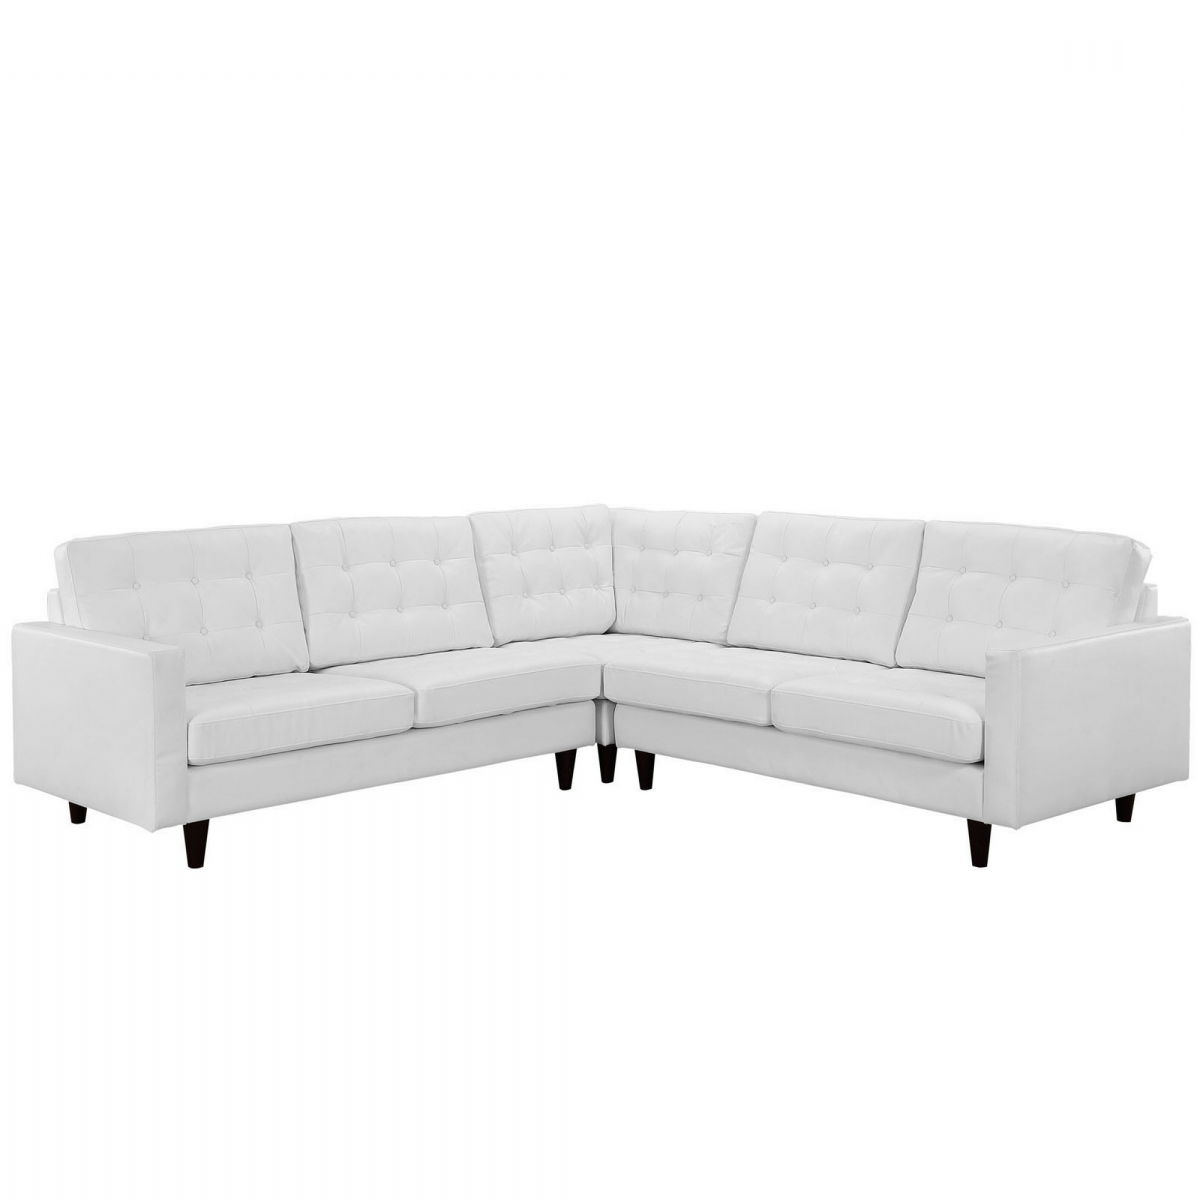 3pc Bonded Leather Upholstered Wooden Sectional Sofas Brown With Regard To Fashionable Ellen 3 Piece Leather Sectional Sofa Set – White (View 12 of 20)